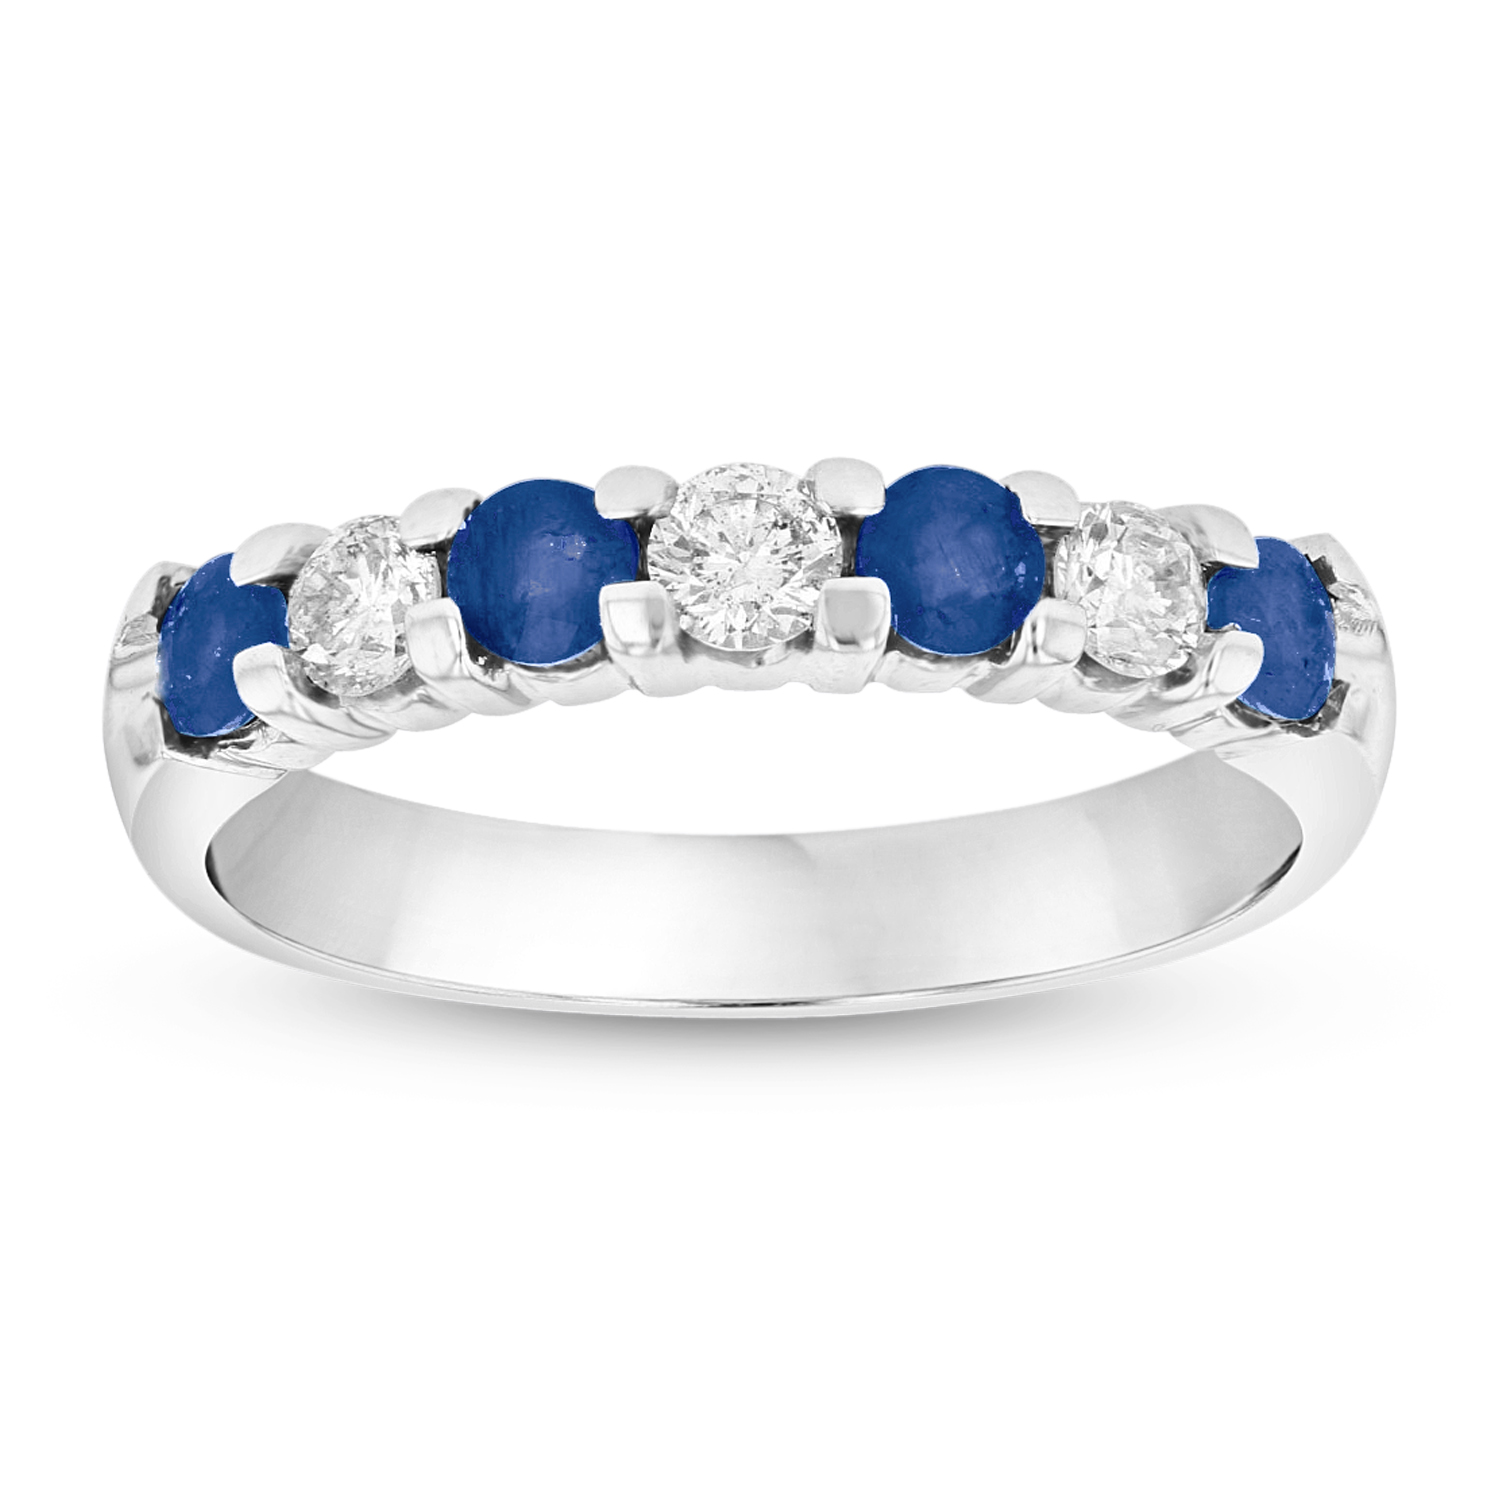 View 14K Gold Ring 0.78ct tw Round Diamonds and Sapphires Prong Set Band